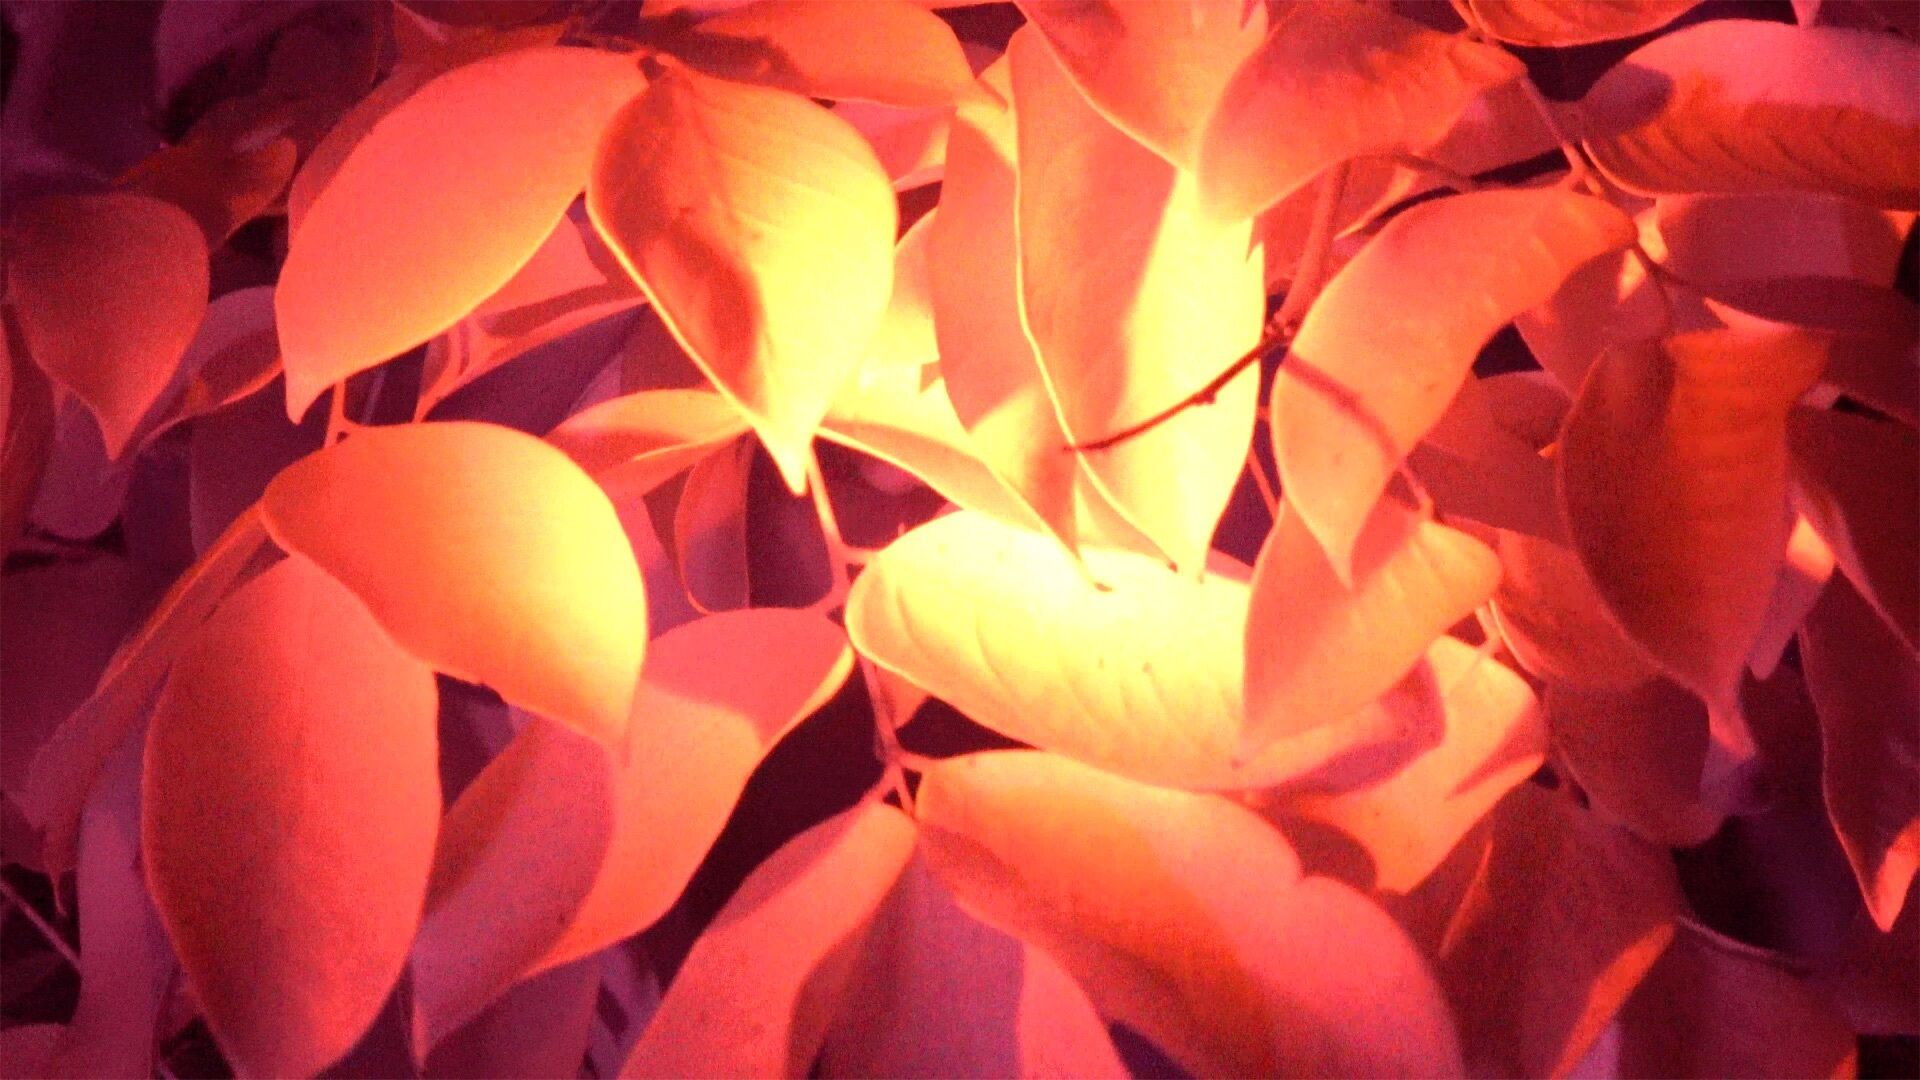 A close-up of orange leaves, brightly lit in the center, glowing yellow.